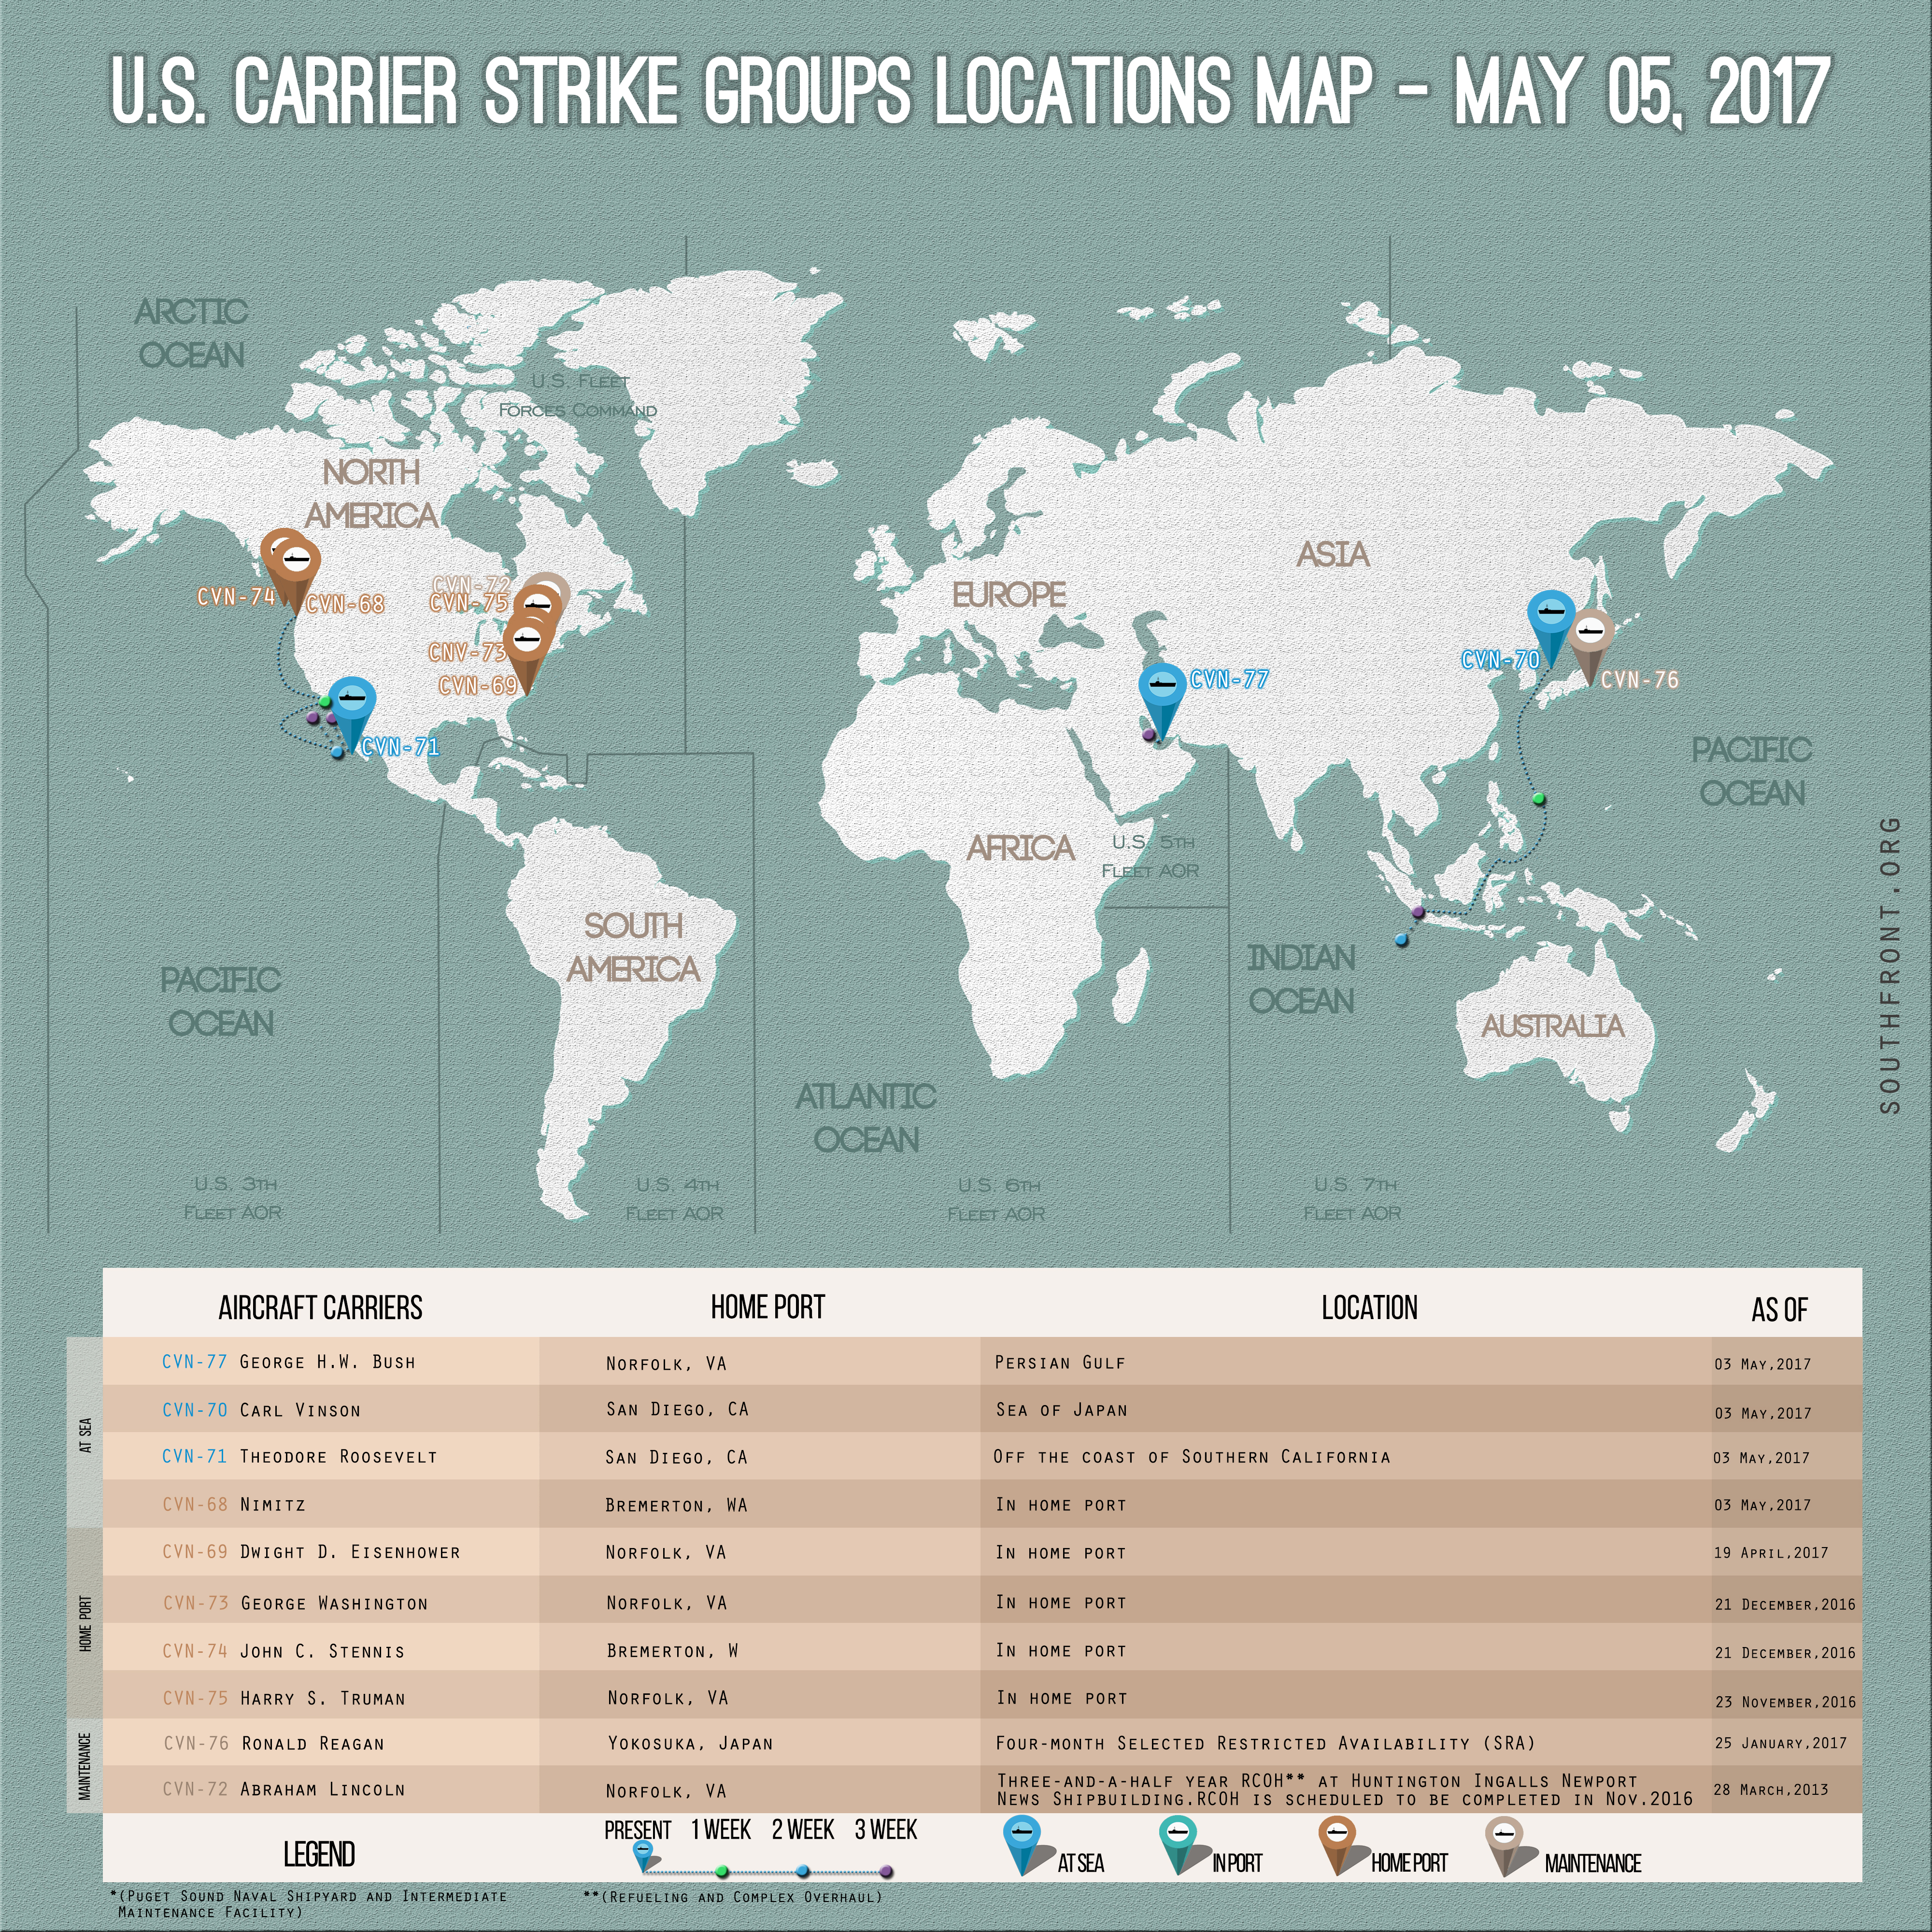 US Carrier Strike Groups Locations Map – May 5, 2017